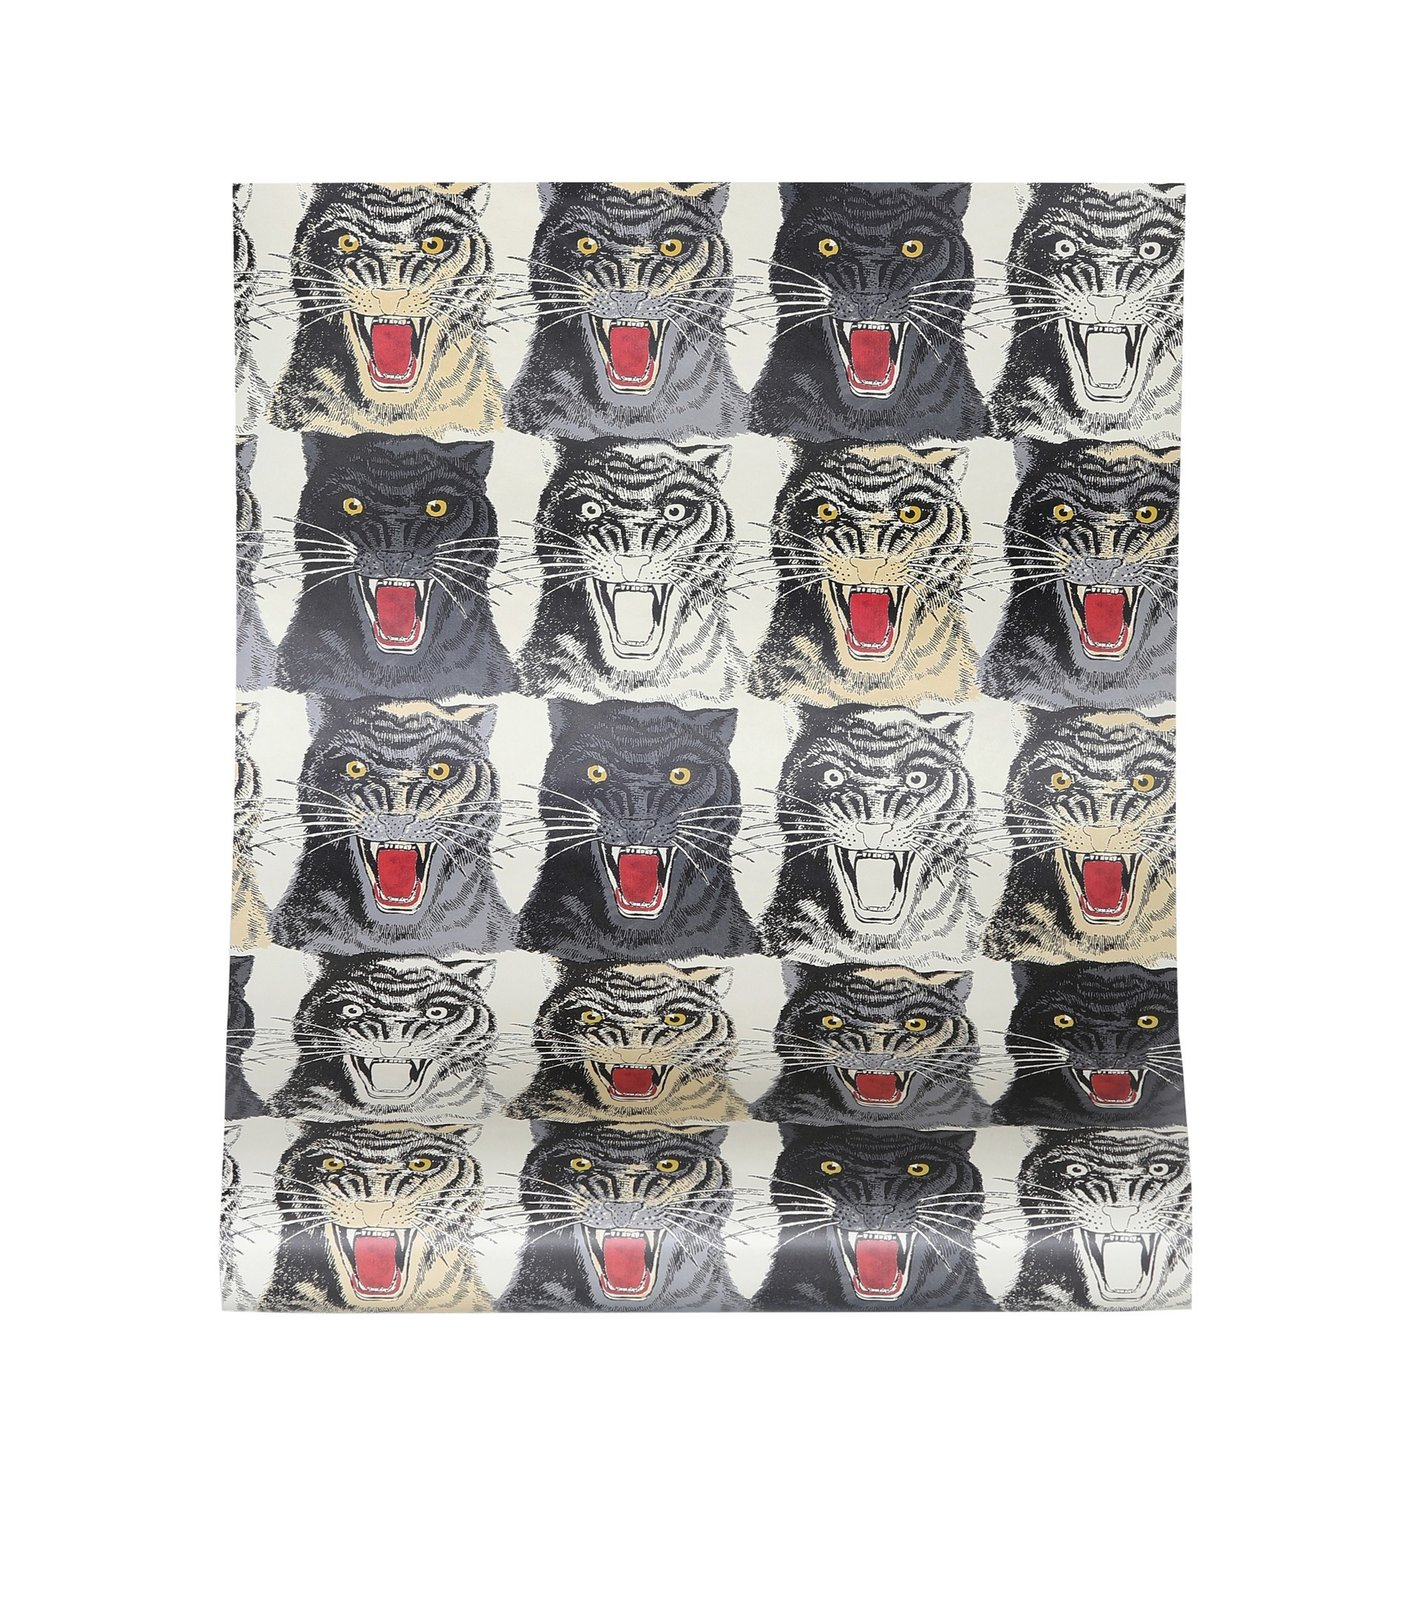 Gucci Tiger Face Printed Wallpaper By Mytheresa Dwell